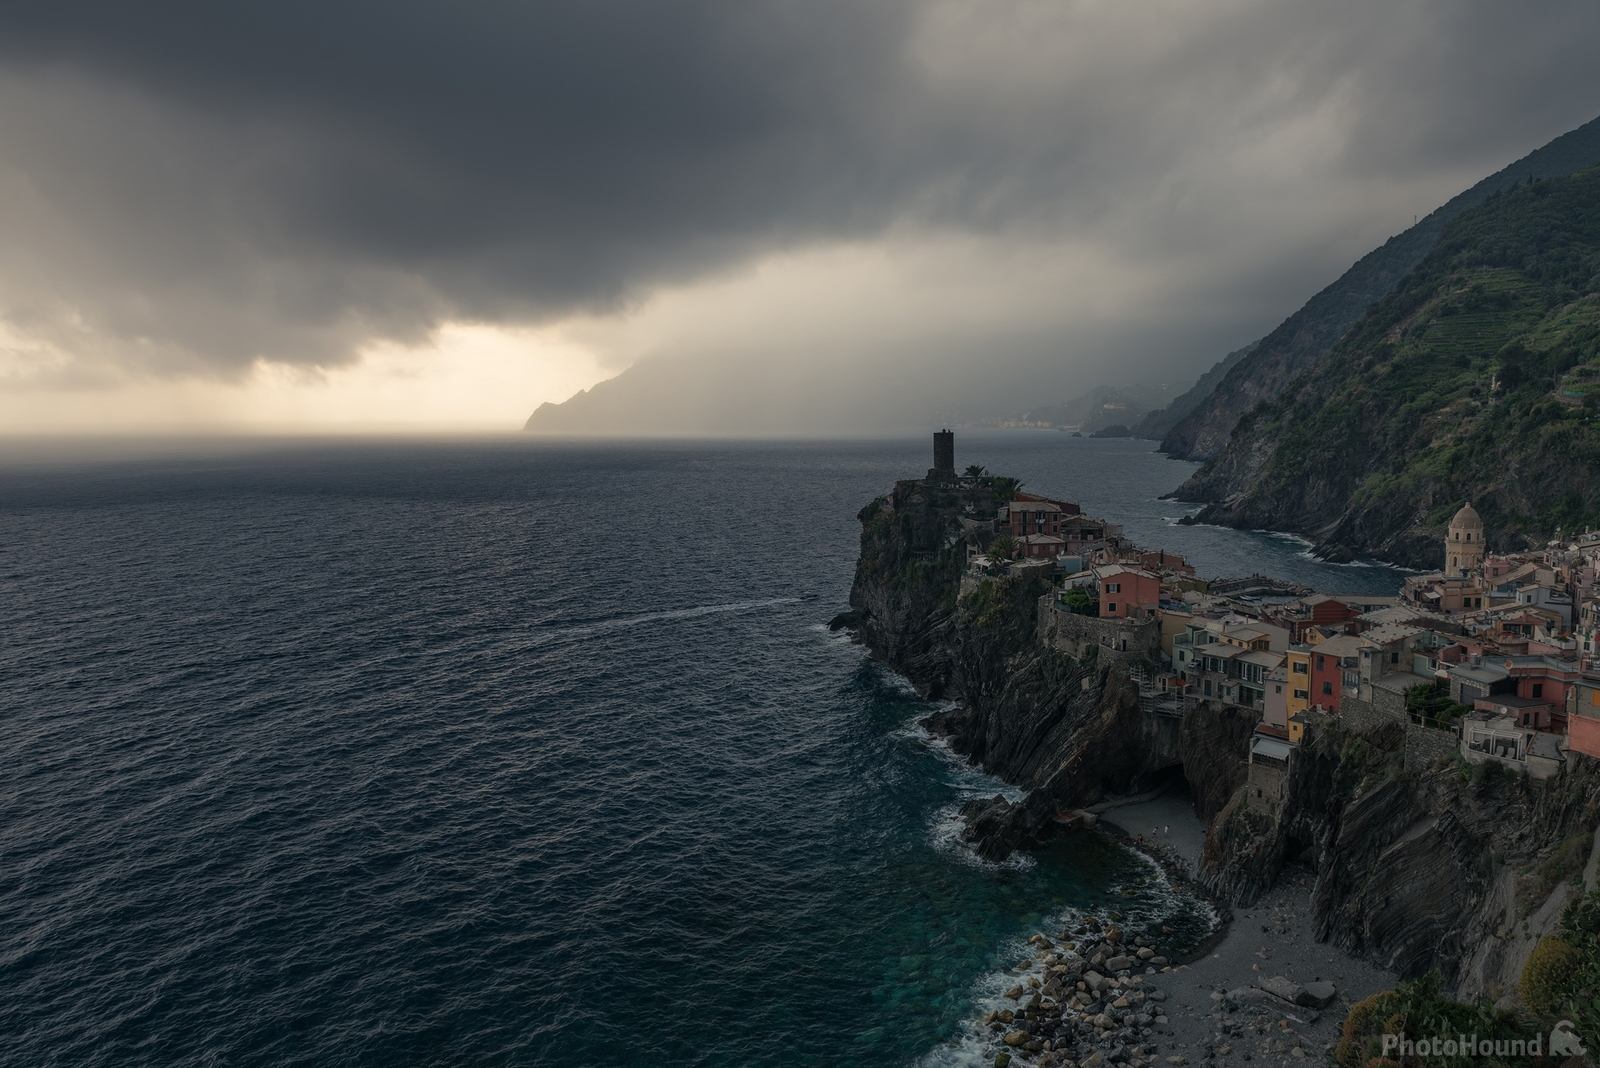 Storm approaching Vernazza Village